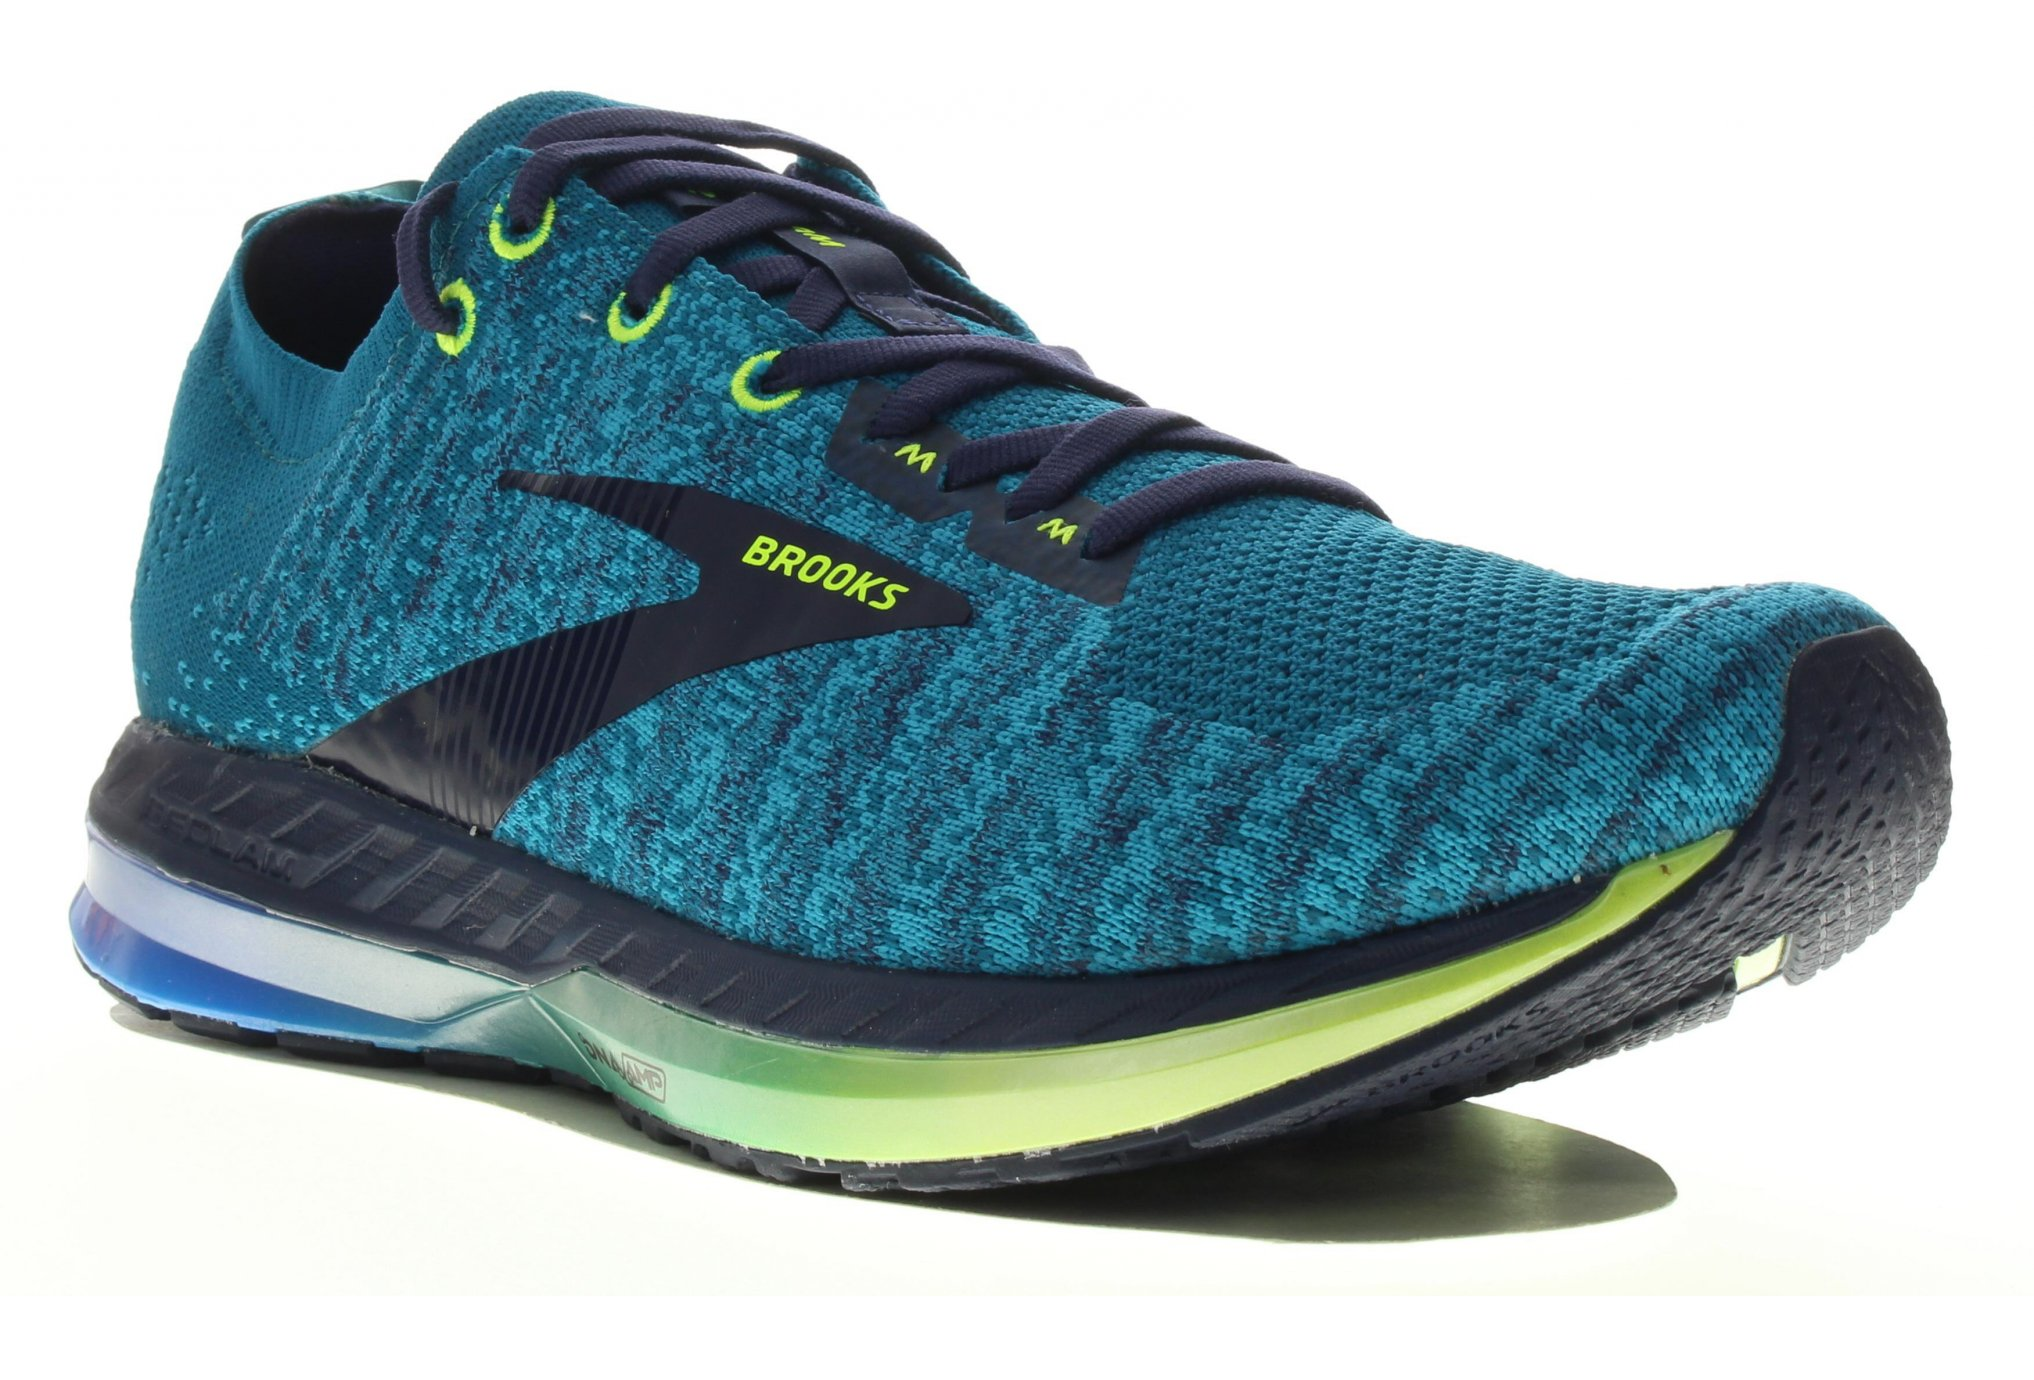 Brooks Bedlam 2 Chaussures homme